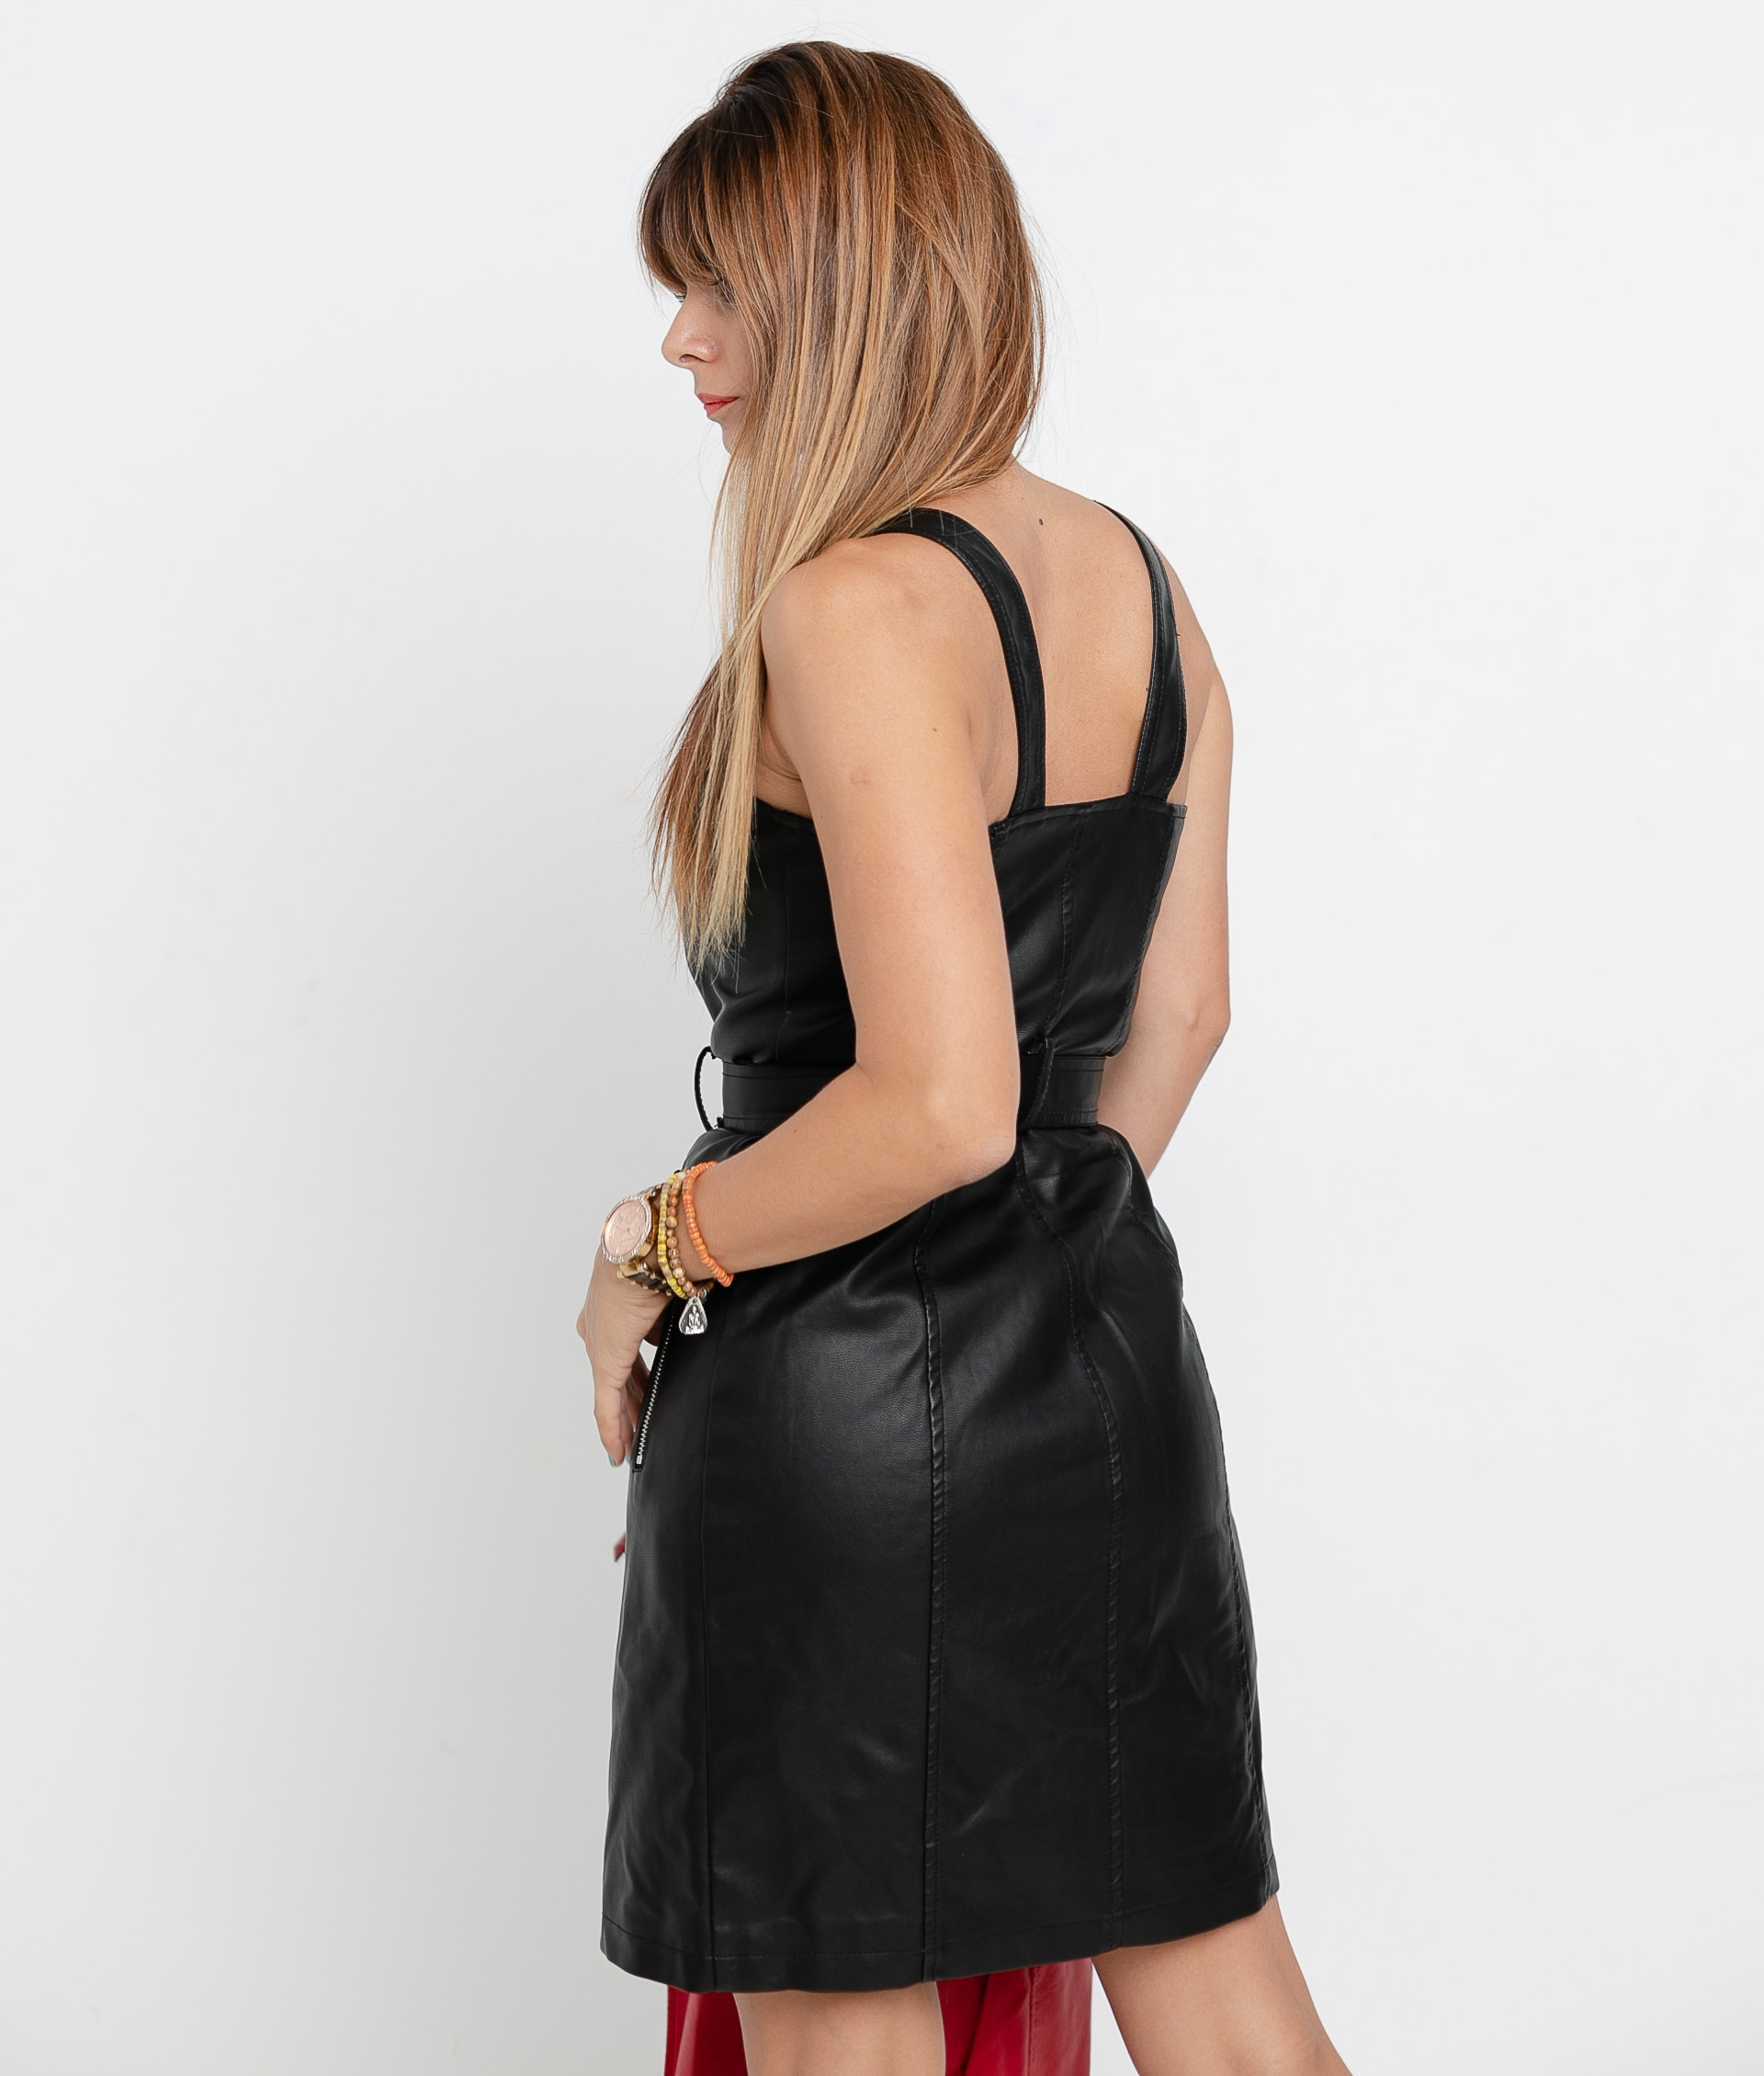 MACAIBO DRESS - BLACK